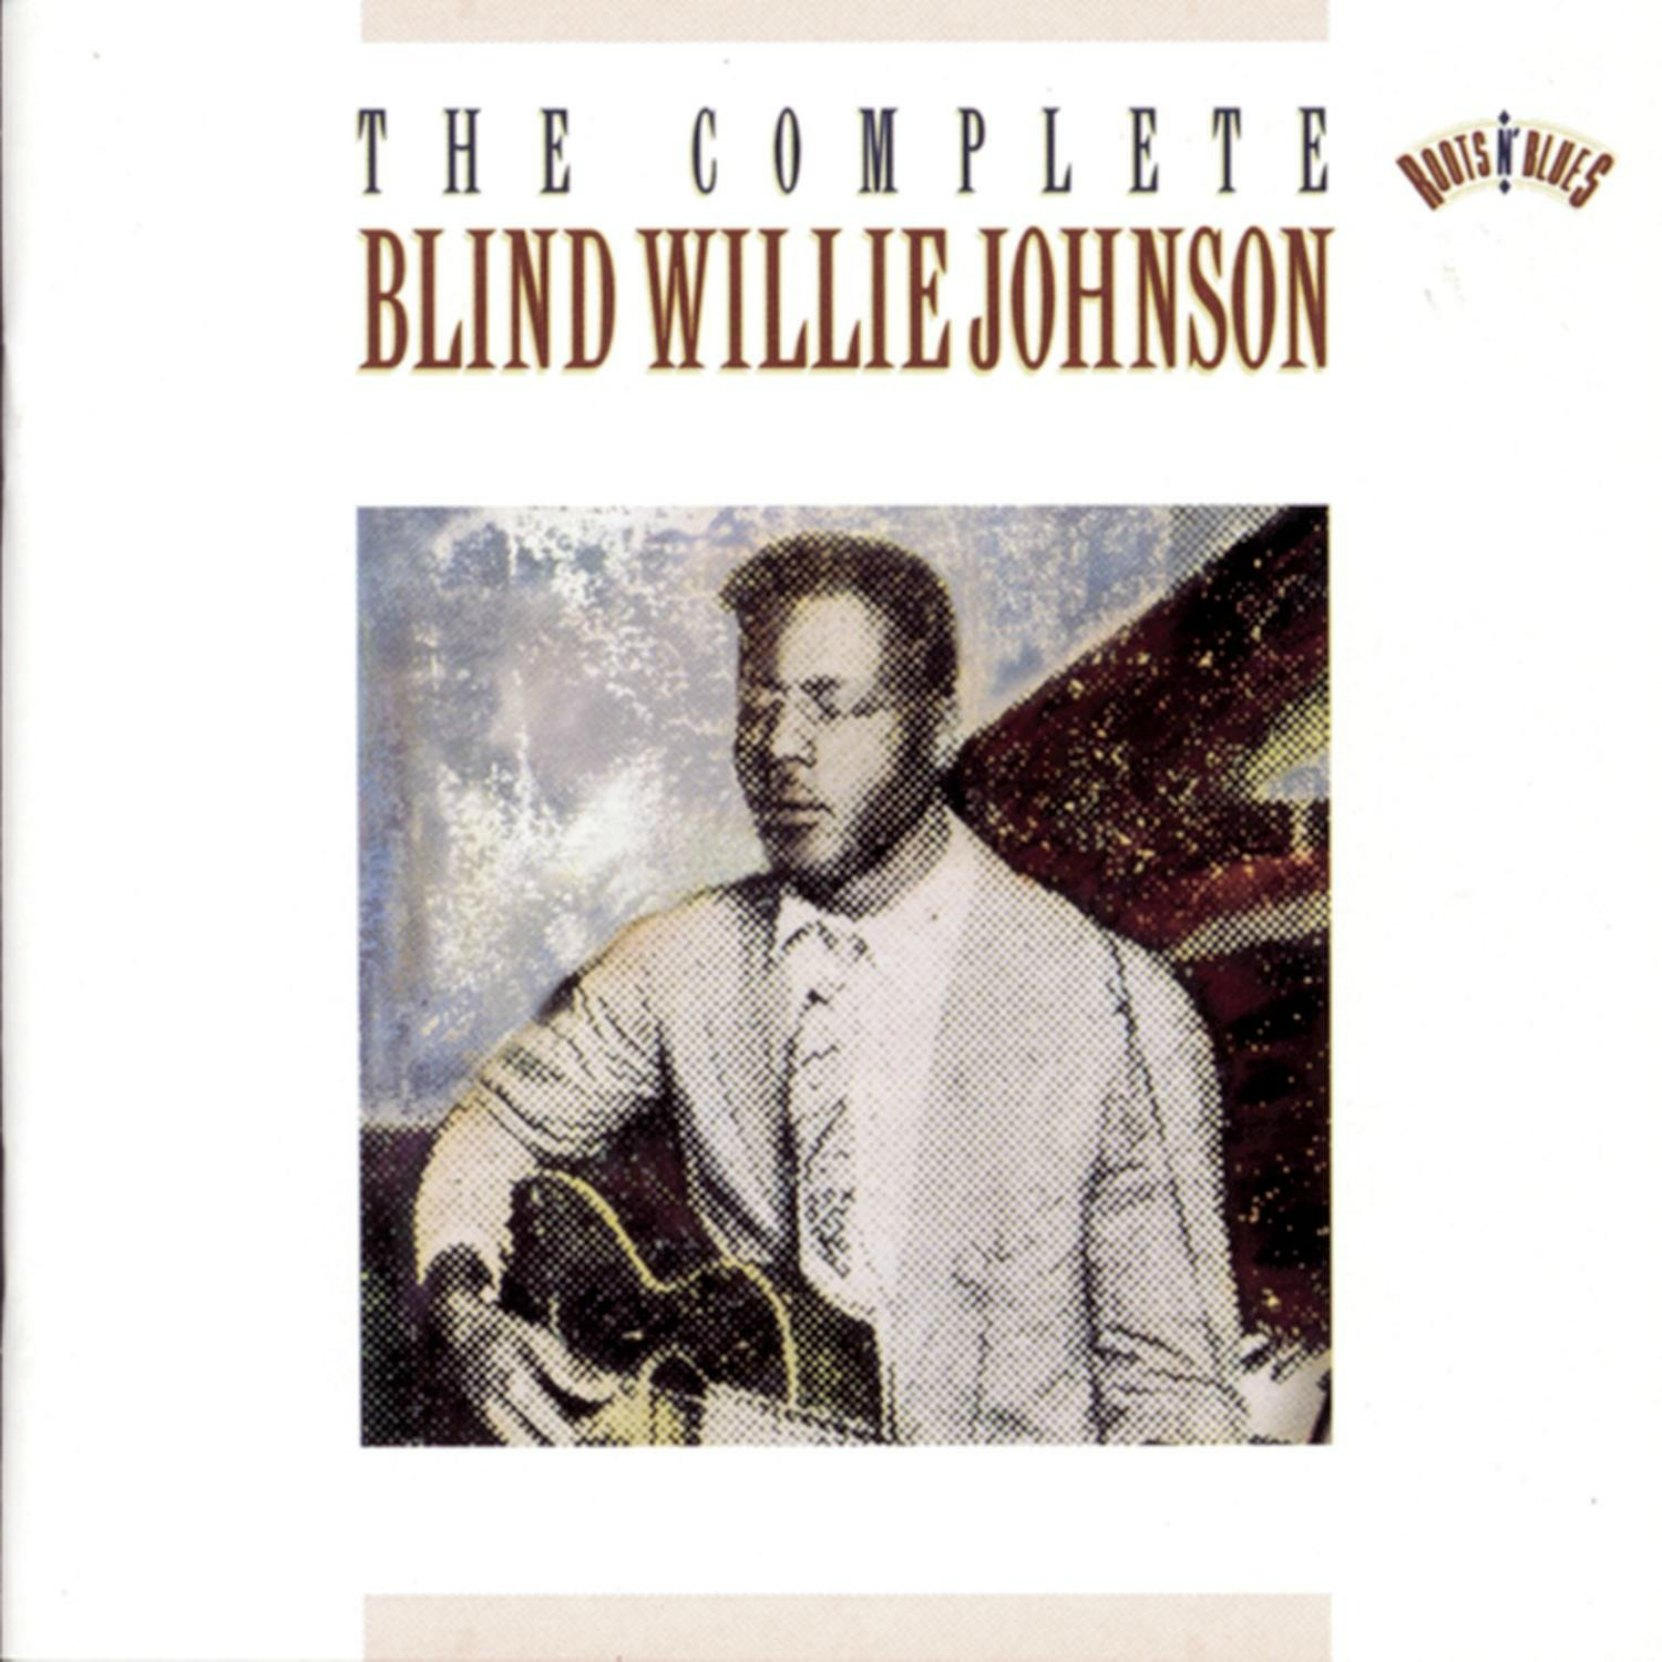 CD cover, The Complete Vintage Blind Willie Johnson, on Sony Legacy Records.